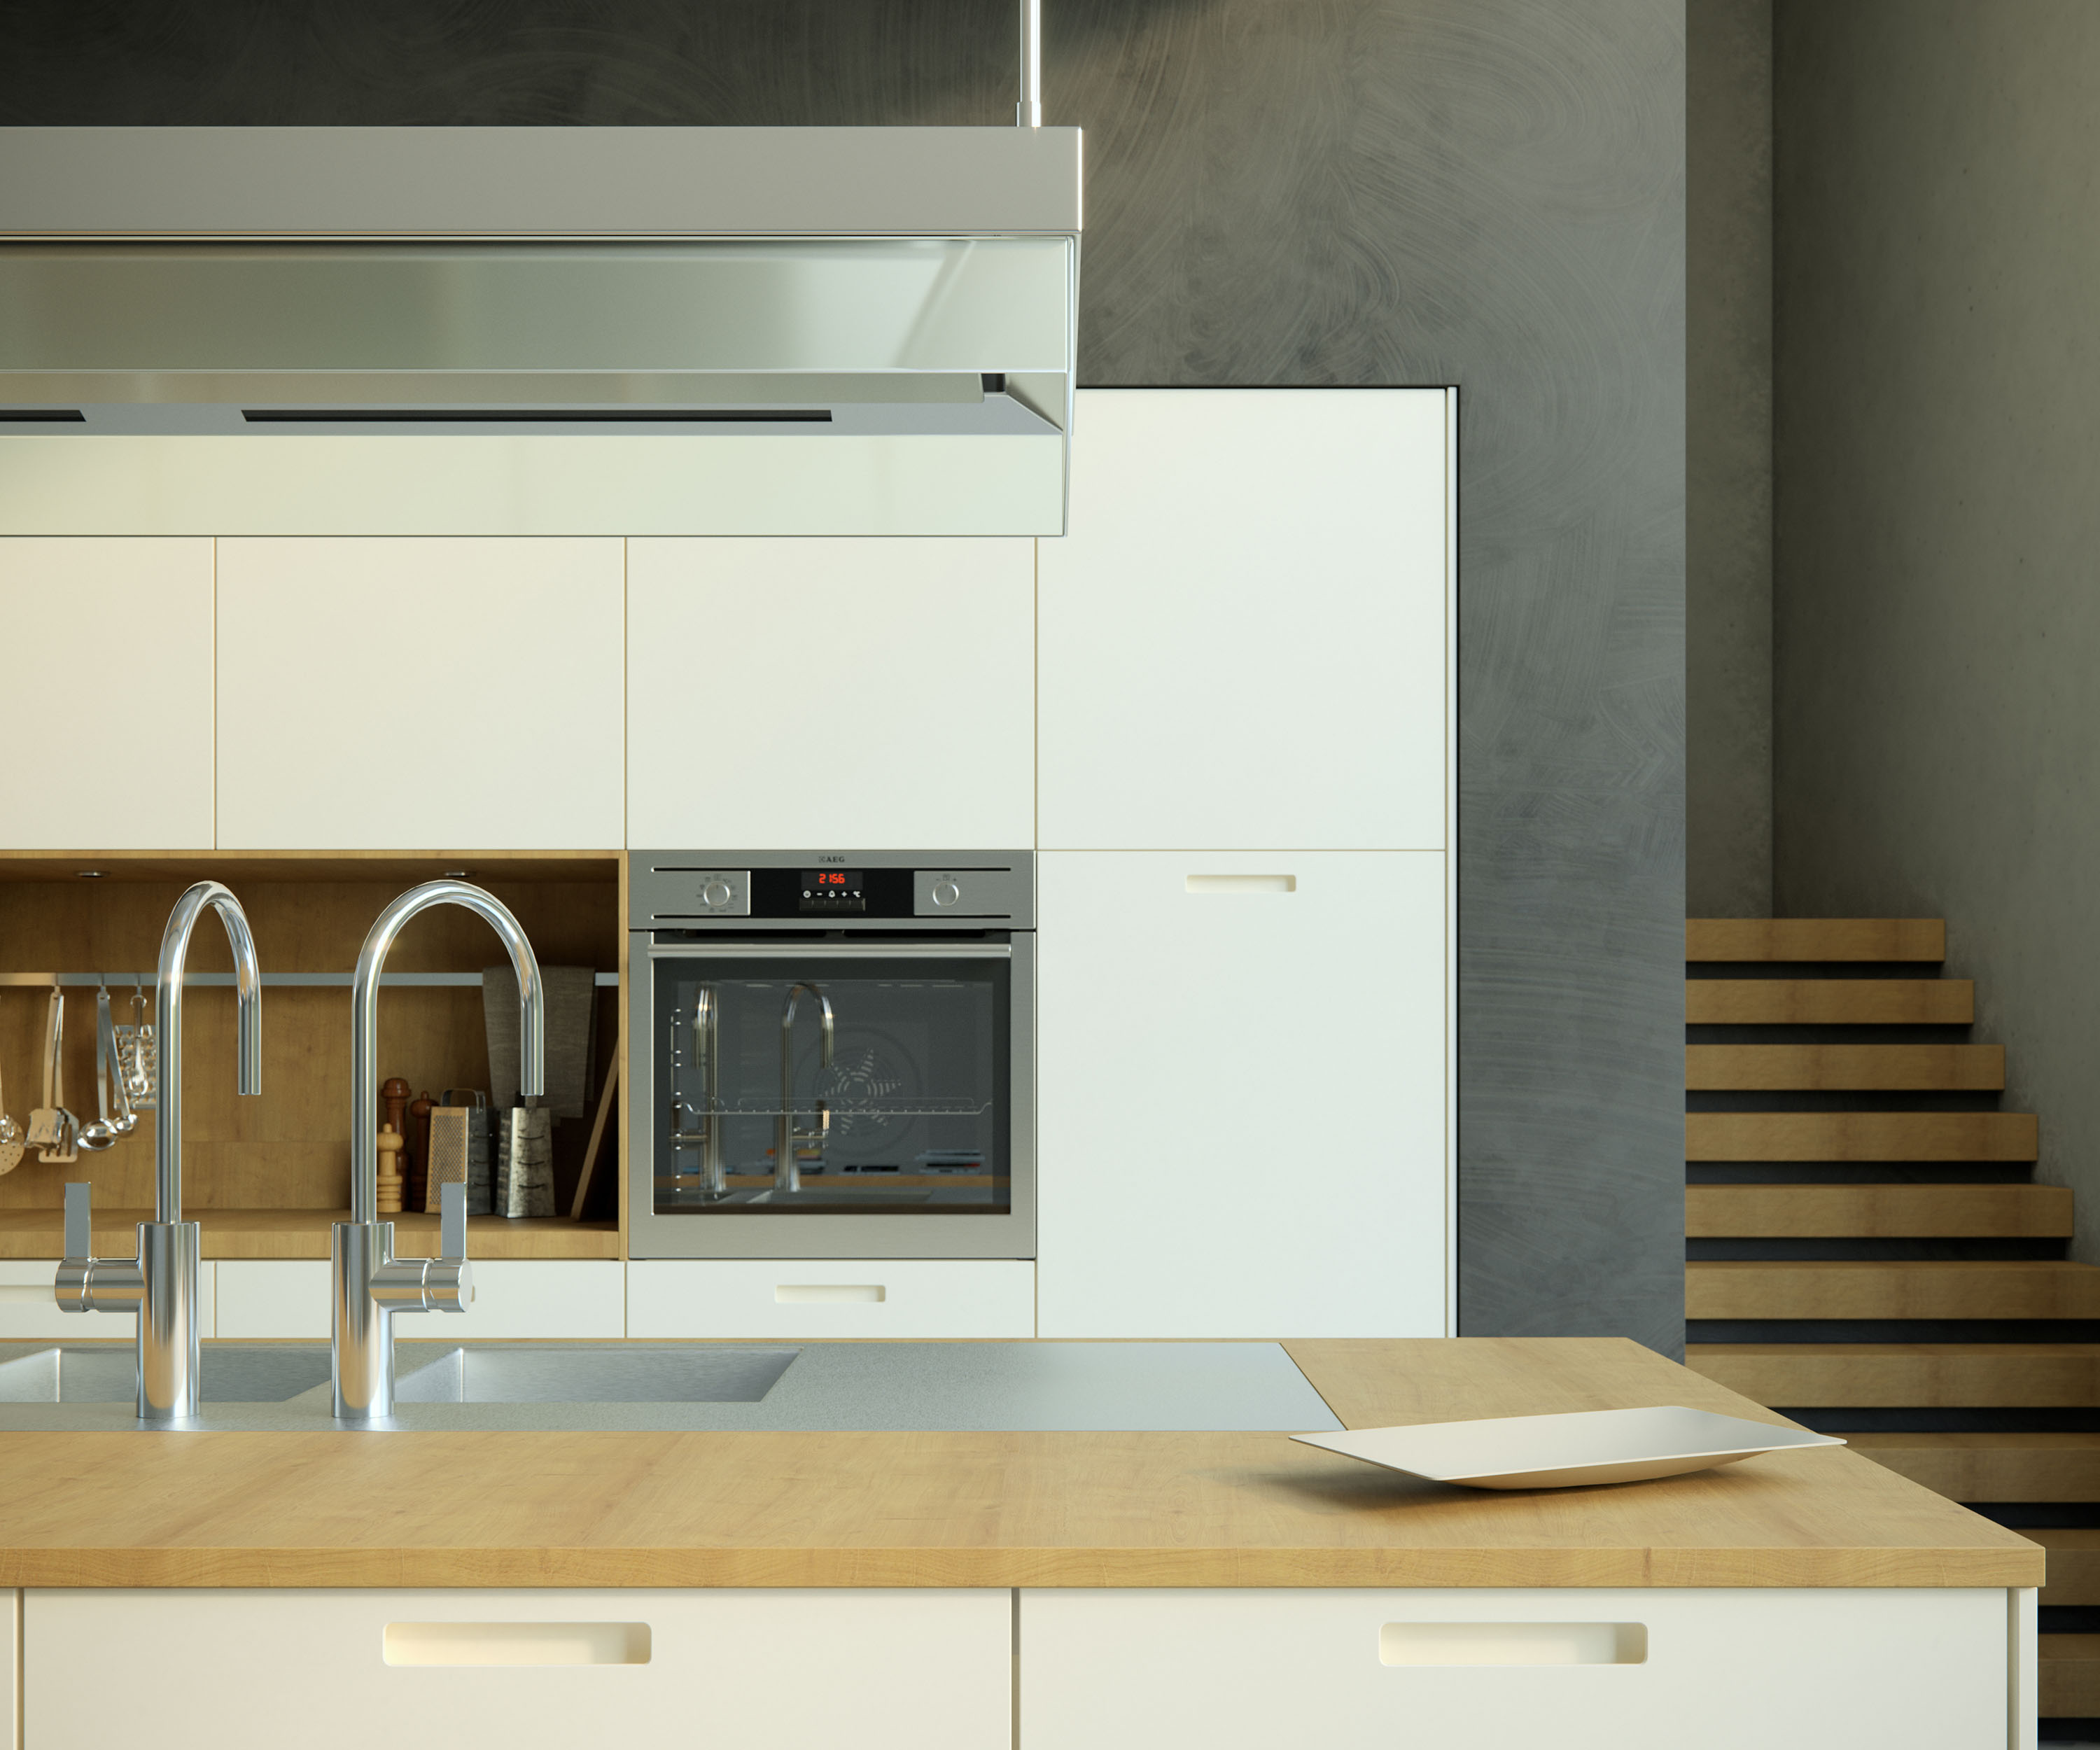 03 kitchen 2